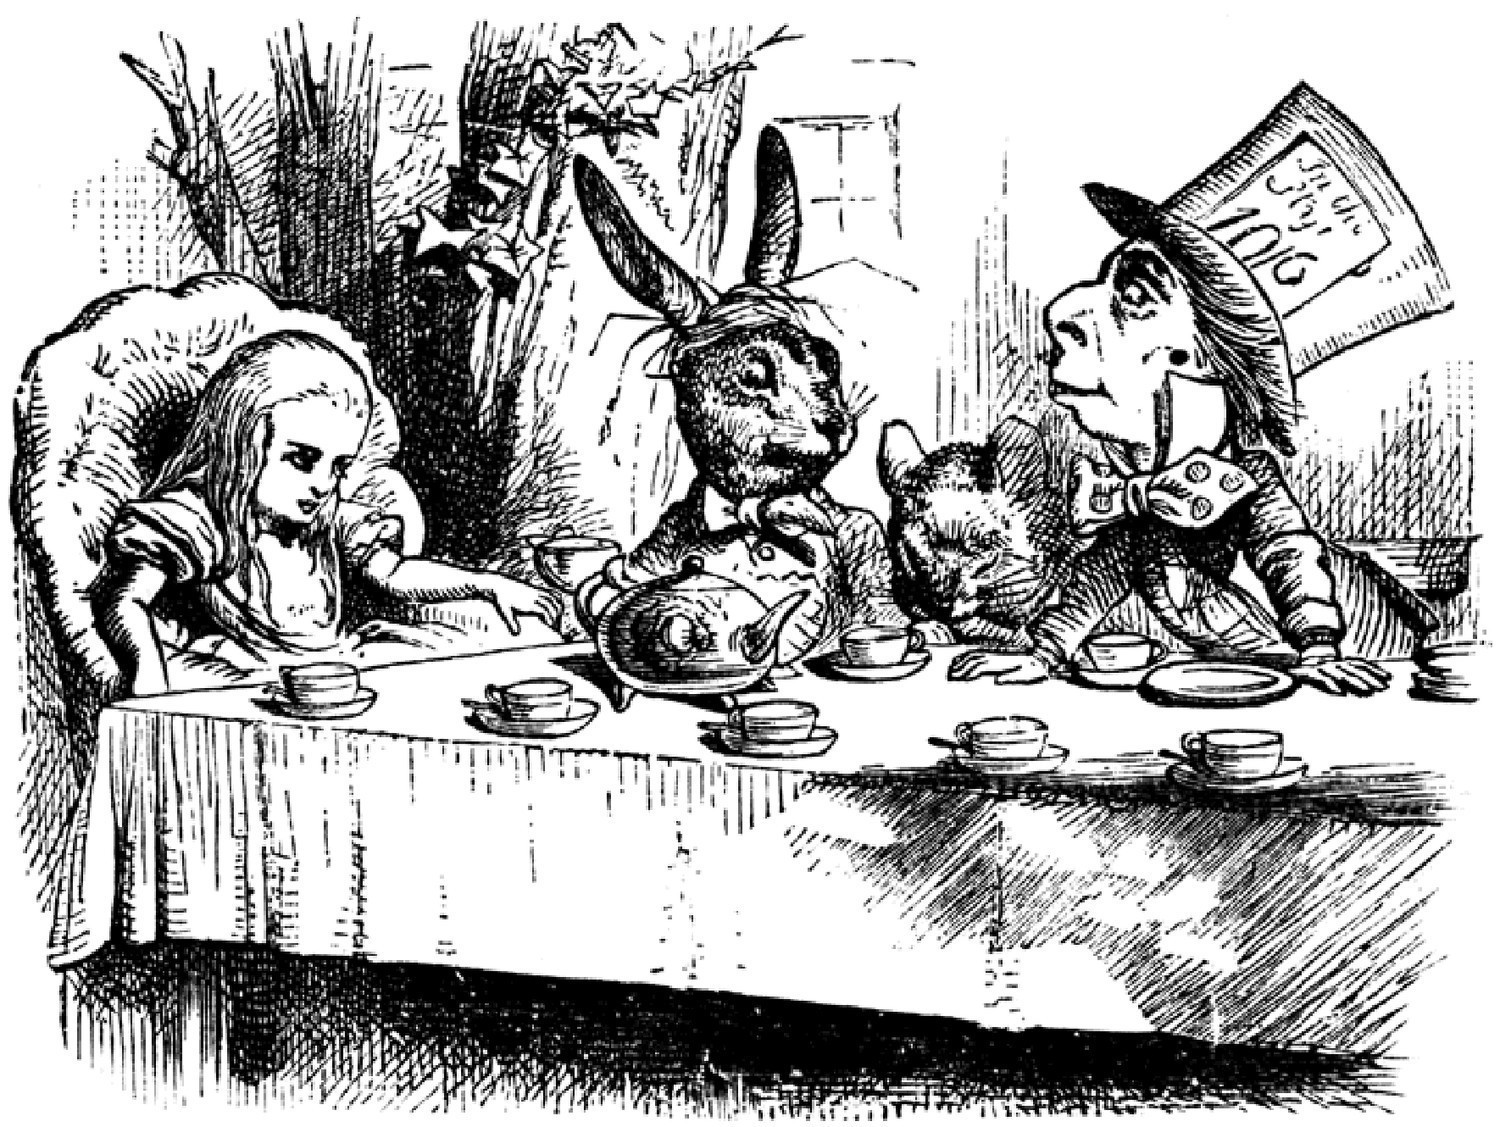 a comparison of the old and new version of lewis carrolls alice in wonderland The author of the alice books, lewis carroll (the pen-name of charles lutwidge dodgson) was a shy math professor at oxford the alice books, sometimes combined or referred to with the abbreviated title alice in wonderland, have been adapted numerous times into films (both live action and.